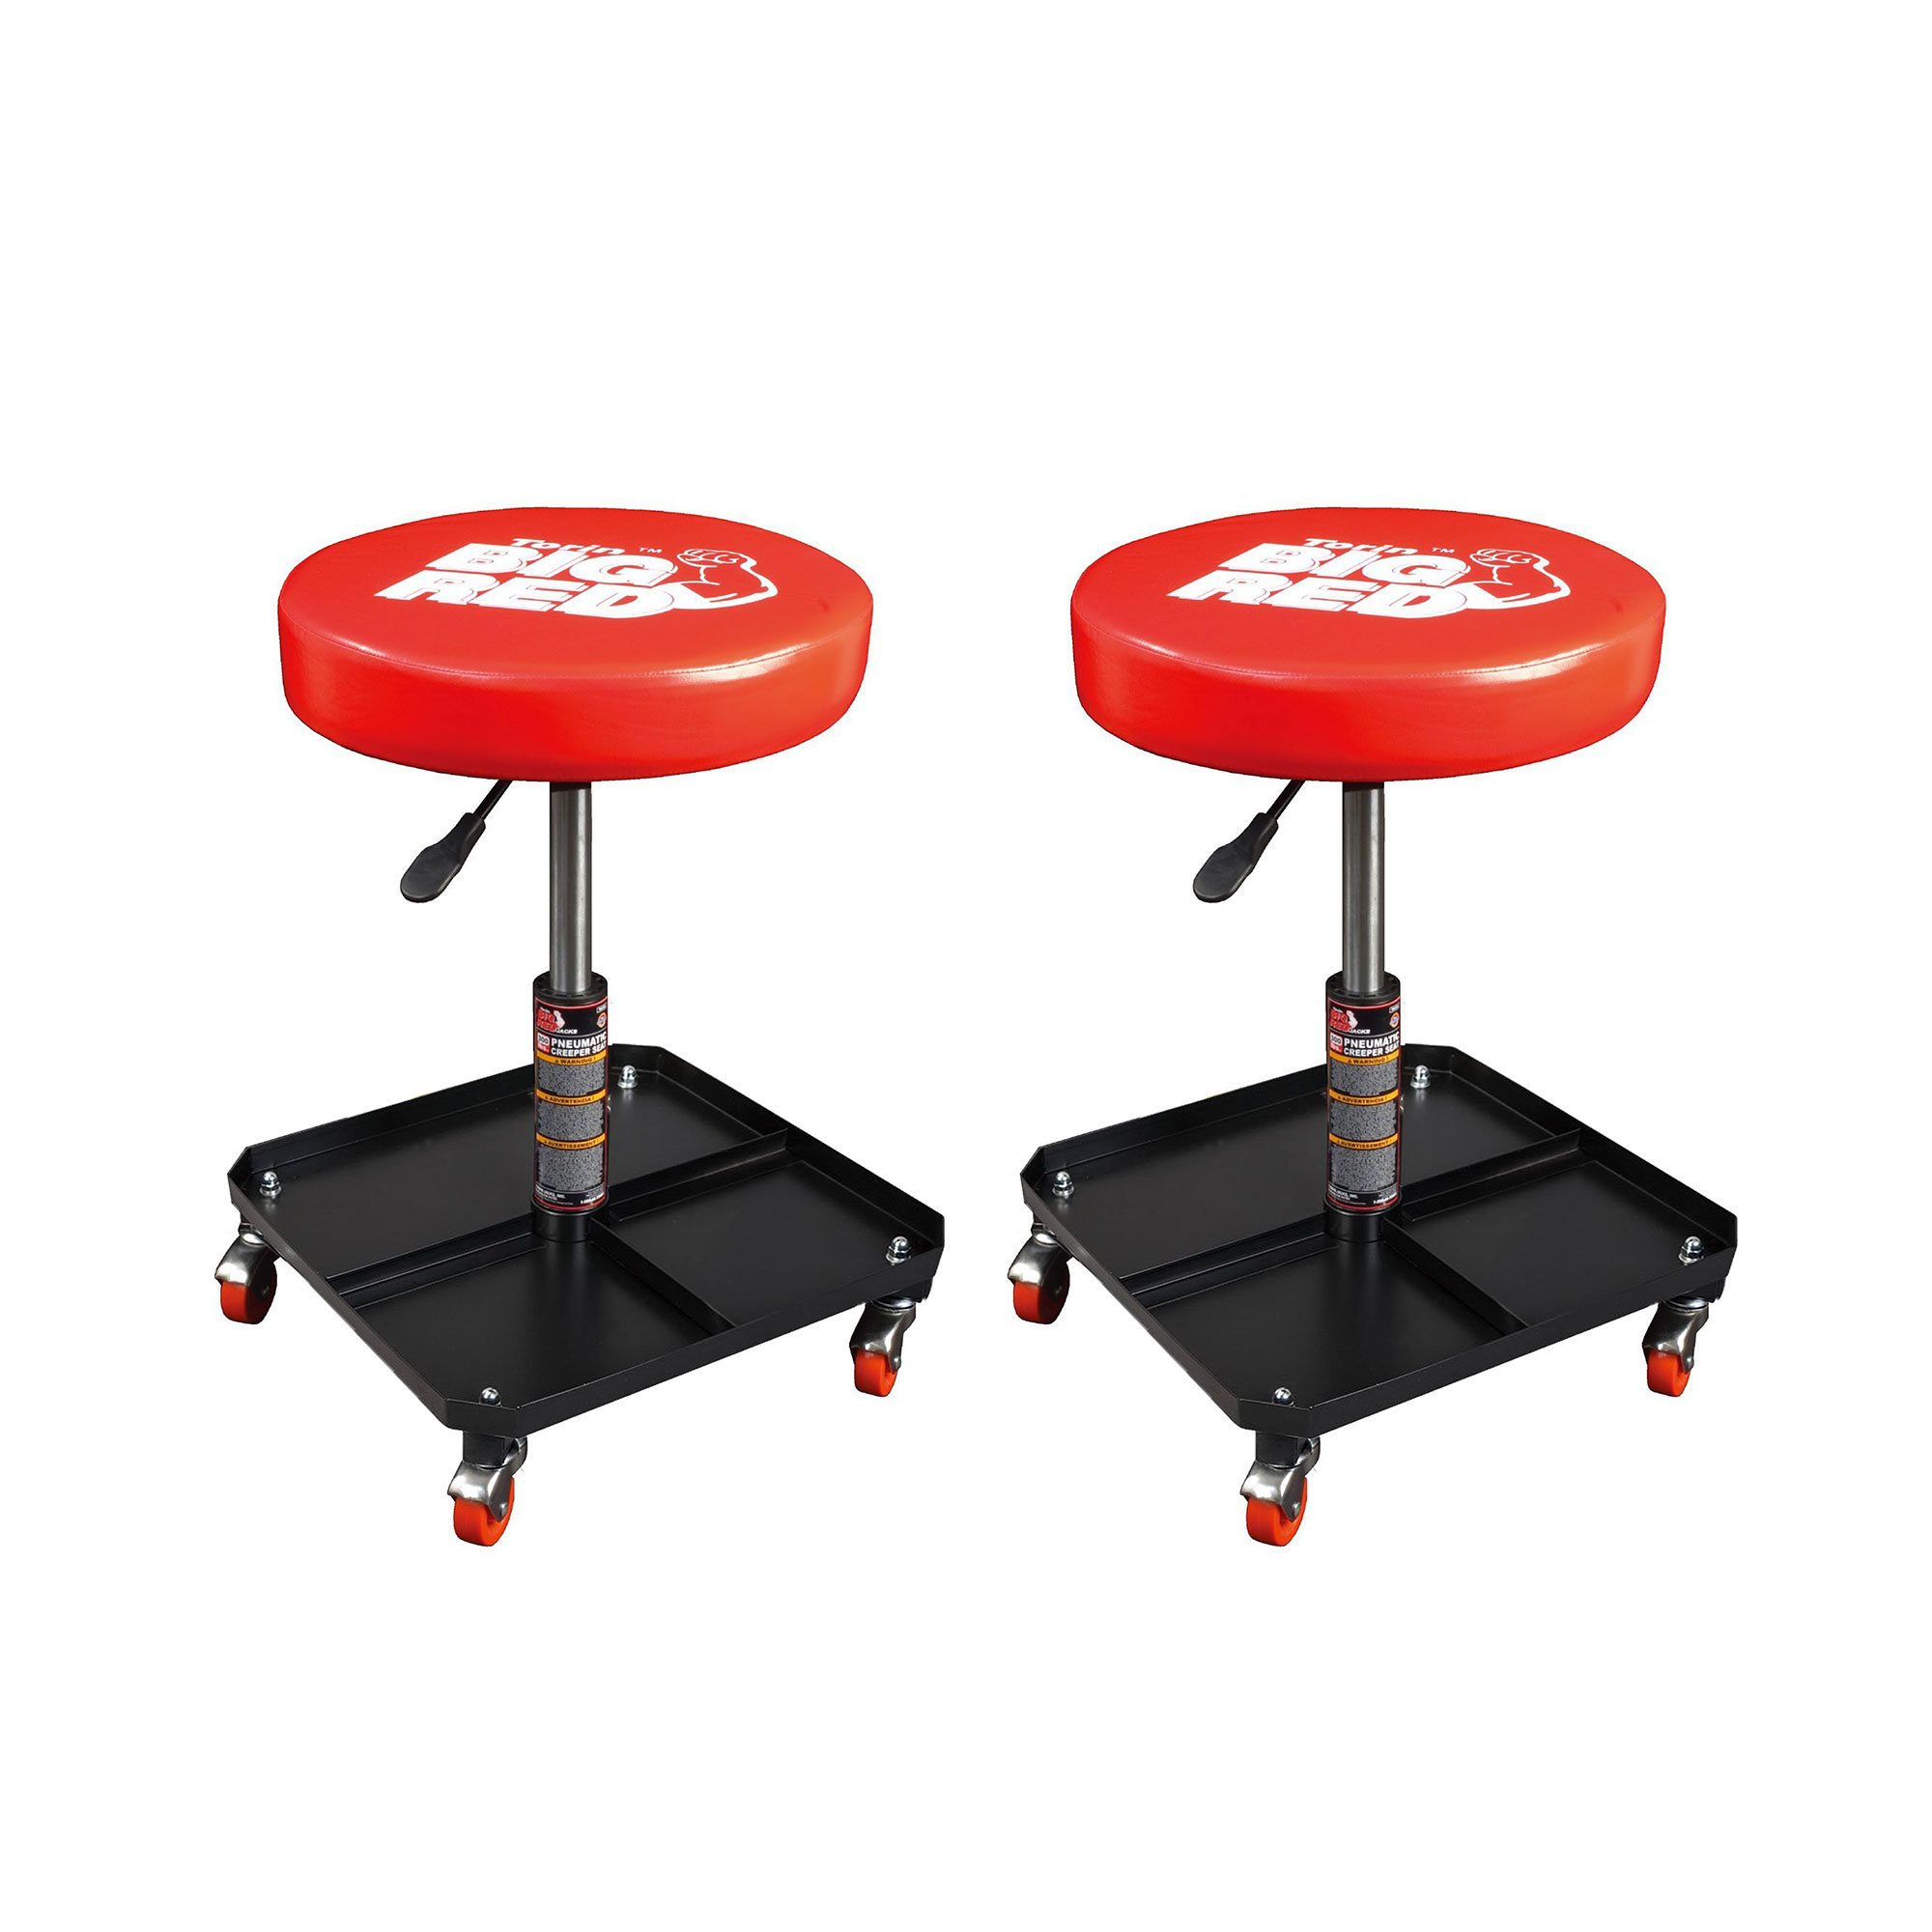 Wondrous Details About Torin Big Red Rolling Pneumatic Adjustable Garage Mechanic Stool Red 2 Pack Ibusinesslaw Wood Chair Design Ideas Ibusinesslaworg